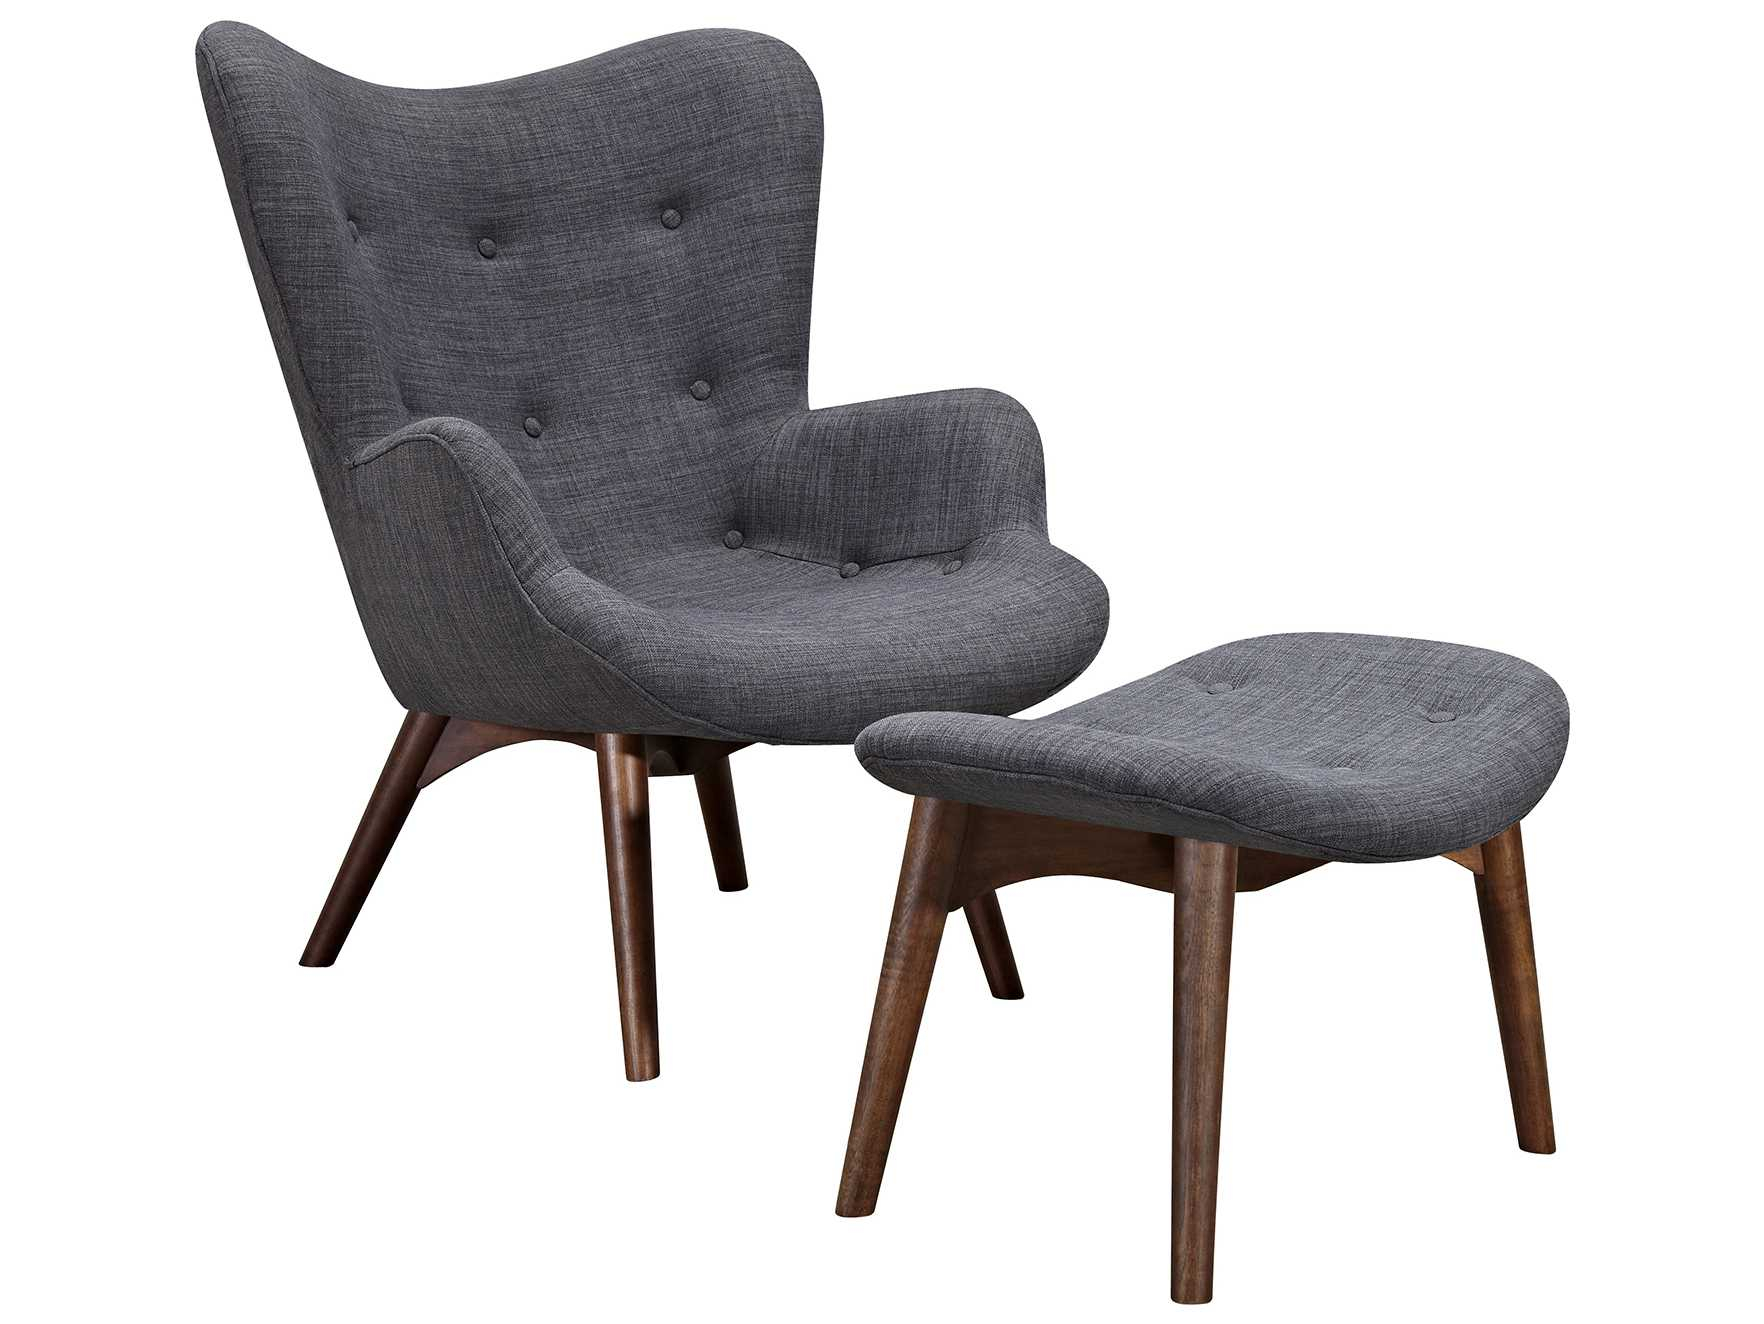 Nyekoncept Aiden Charcoal Gray Accent Chair & Ottoman With Walnut With Regard To Aidan Ii Swivel Accent Chairs (View 13 of 20)